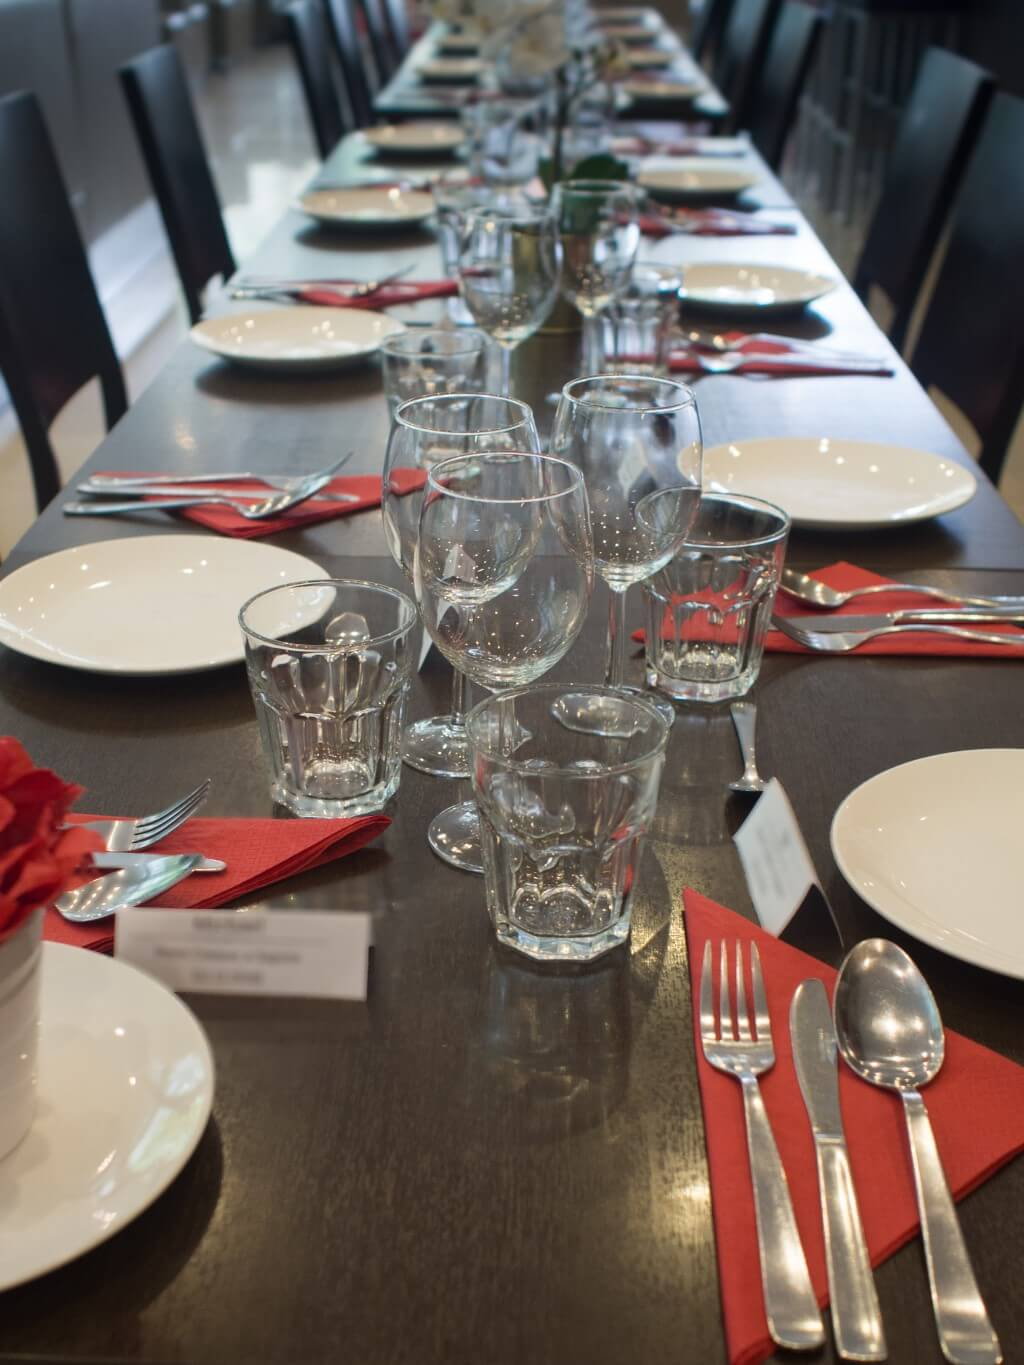 Table setting for event at a restaurant